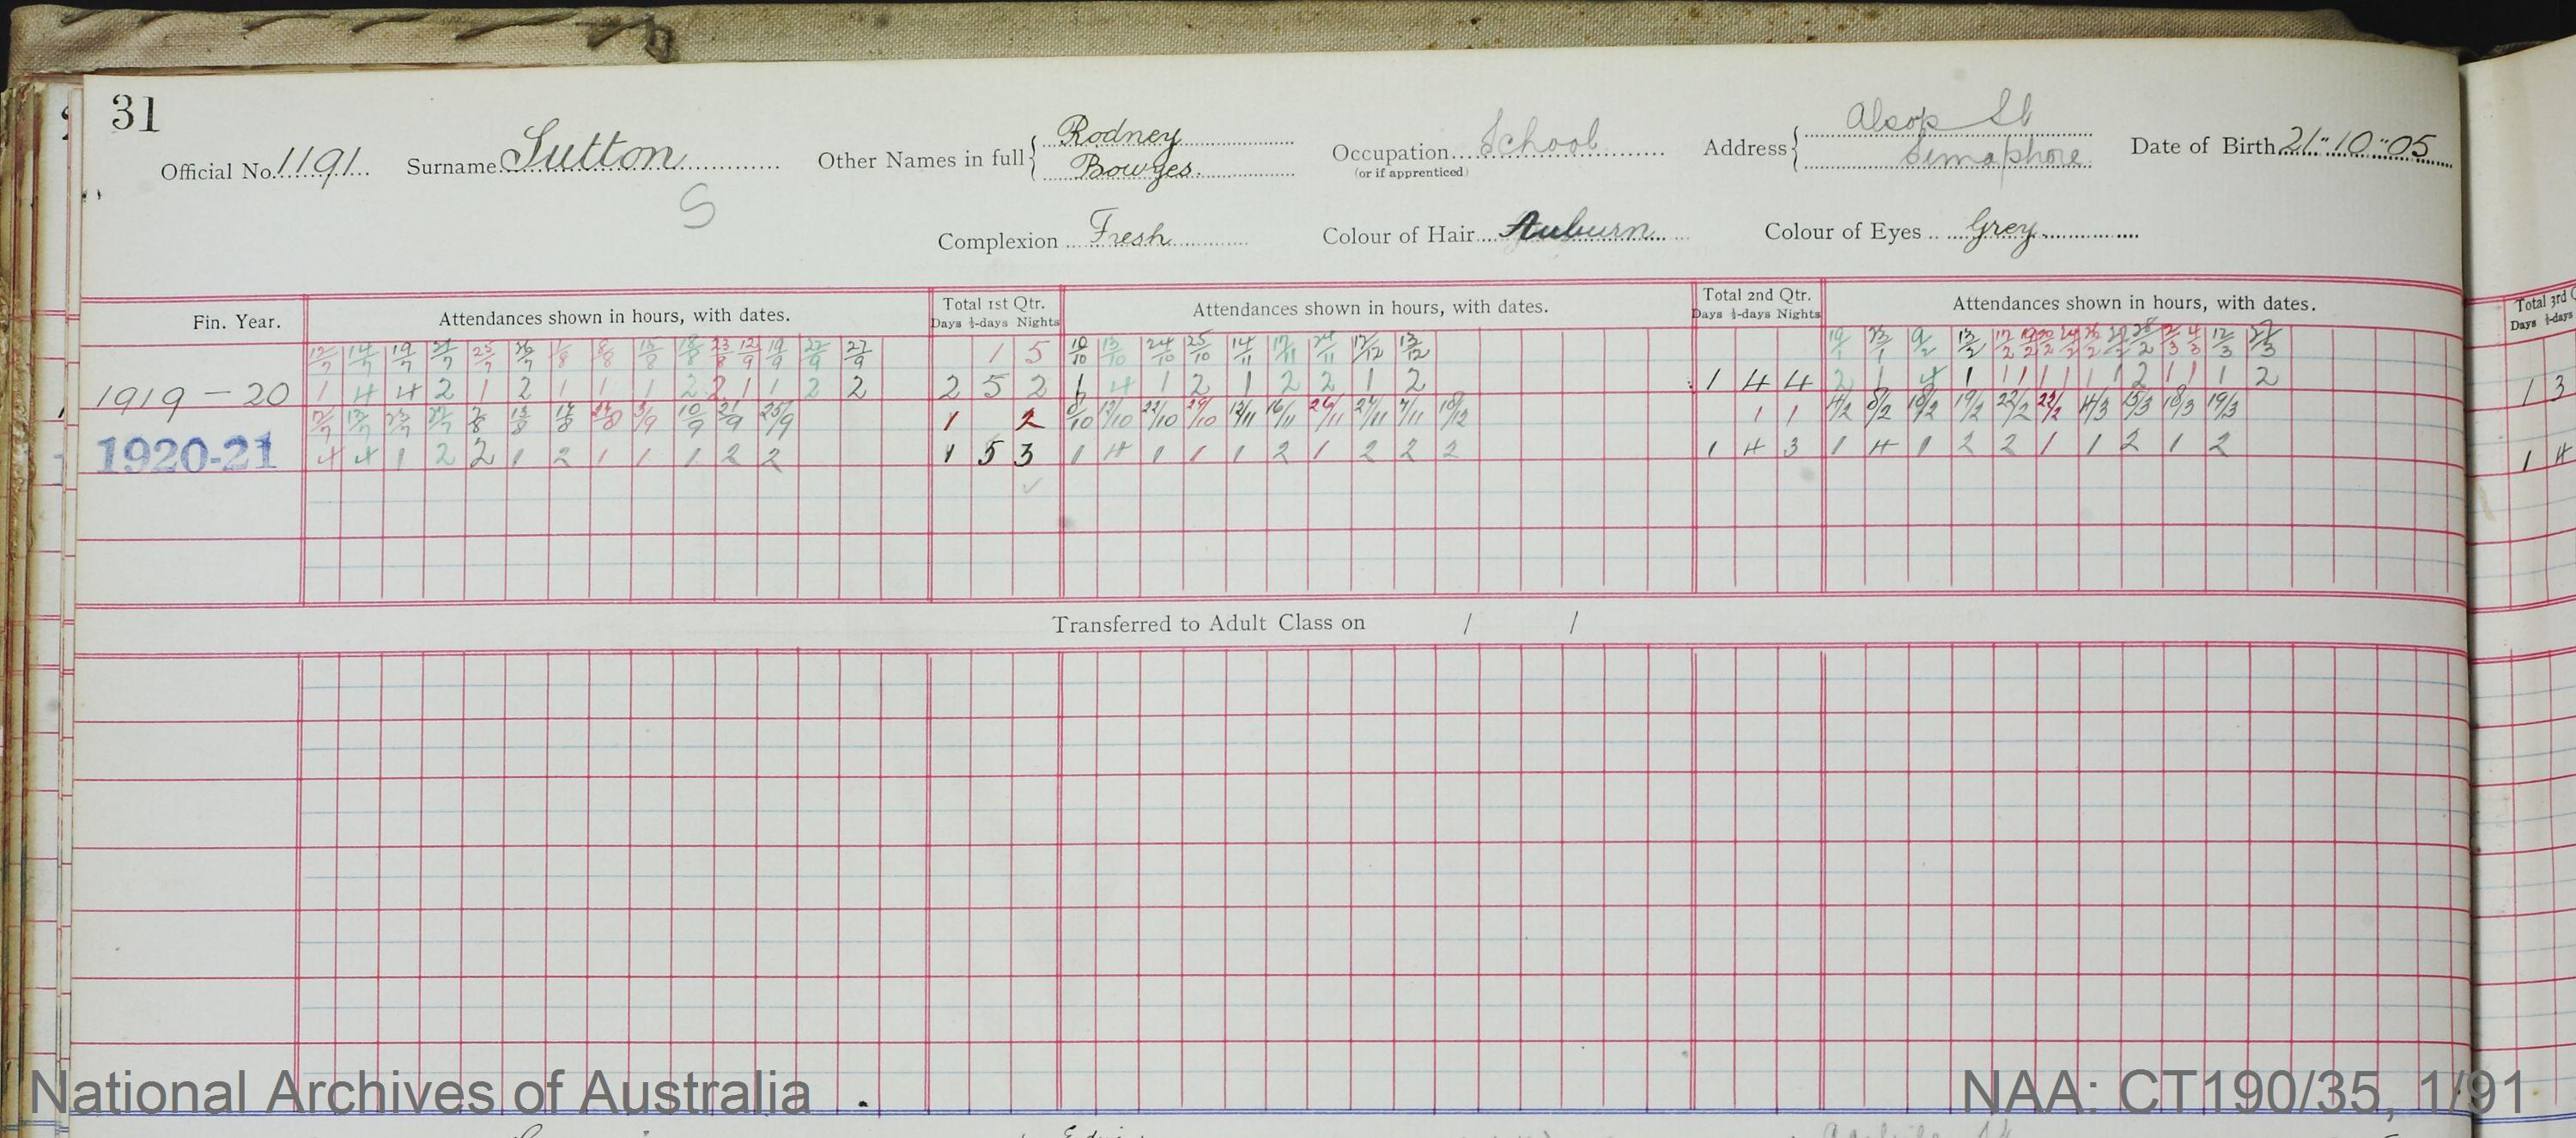 SURNAME - SUTTON;  GIVEN NAME(S) - Rodney Bowyes;  OFFICIAL NUMBER - 1191;  DATE OF BIRTH - 21 October 1905;  PLACE OF BIRTH - [Unknown];  NEXT OF KIN - [Unknown];  SERVICE/STATION - Semaphore, South Australia;  REGISTRATION DATE - February 1919